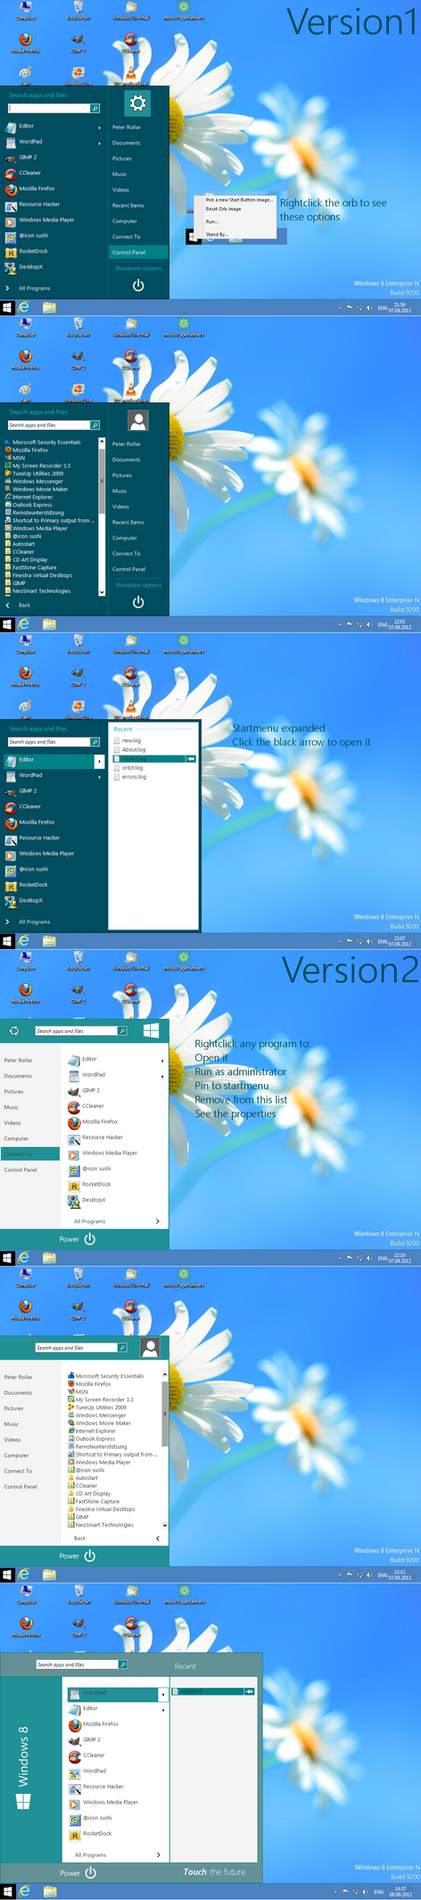 Windows8 startmenu replacement for all OS by PeterRollar